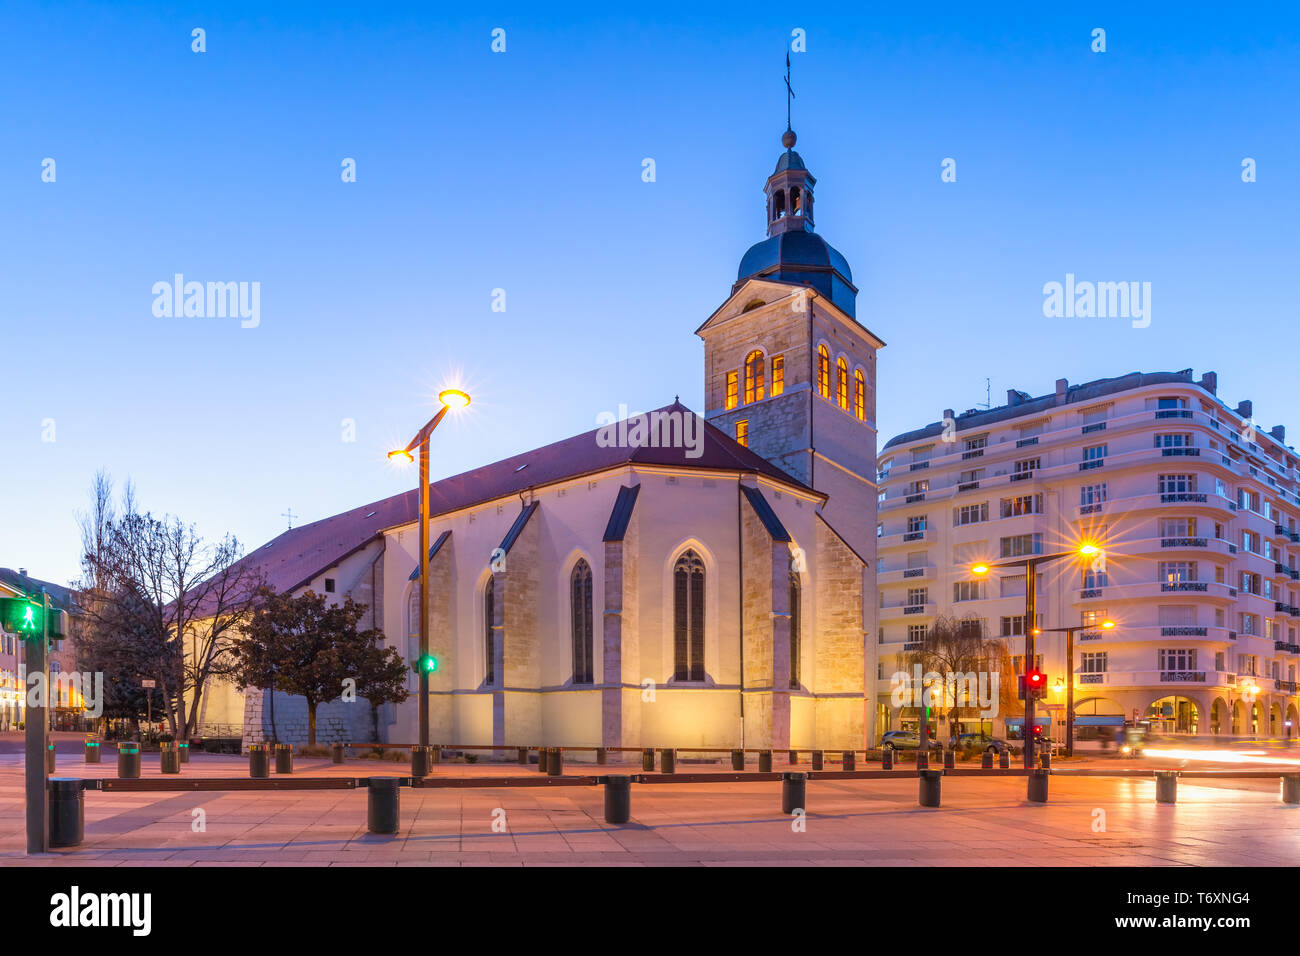 Church of St Maurice, Annecy, France Stock Photo